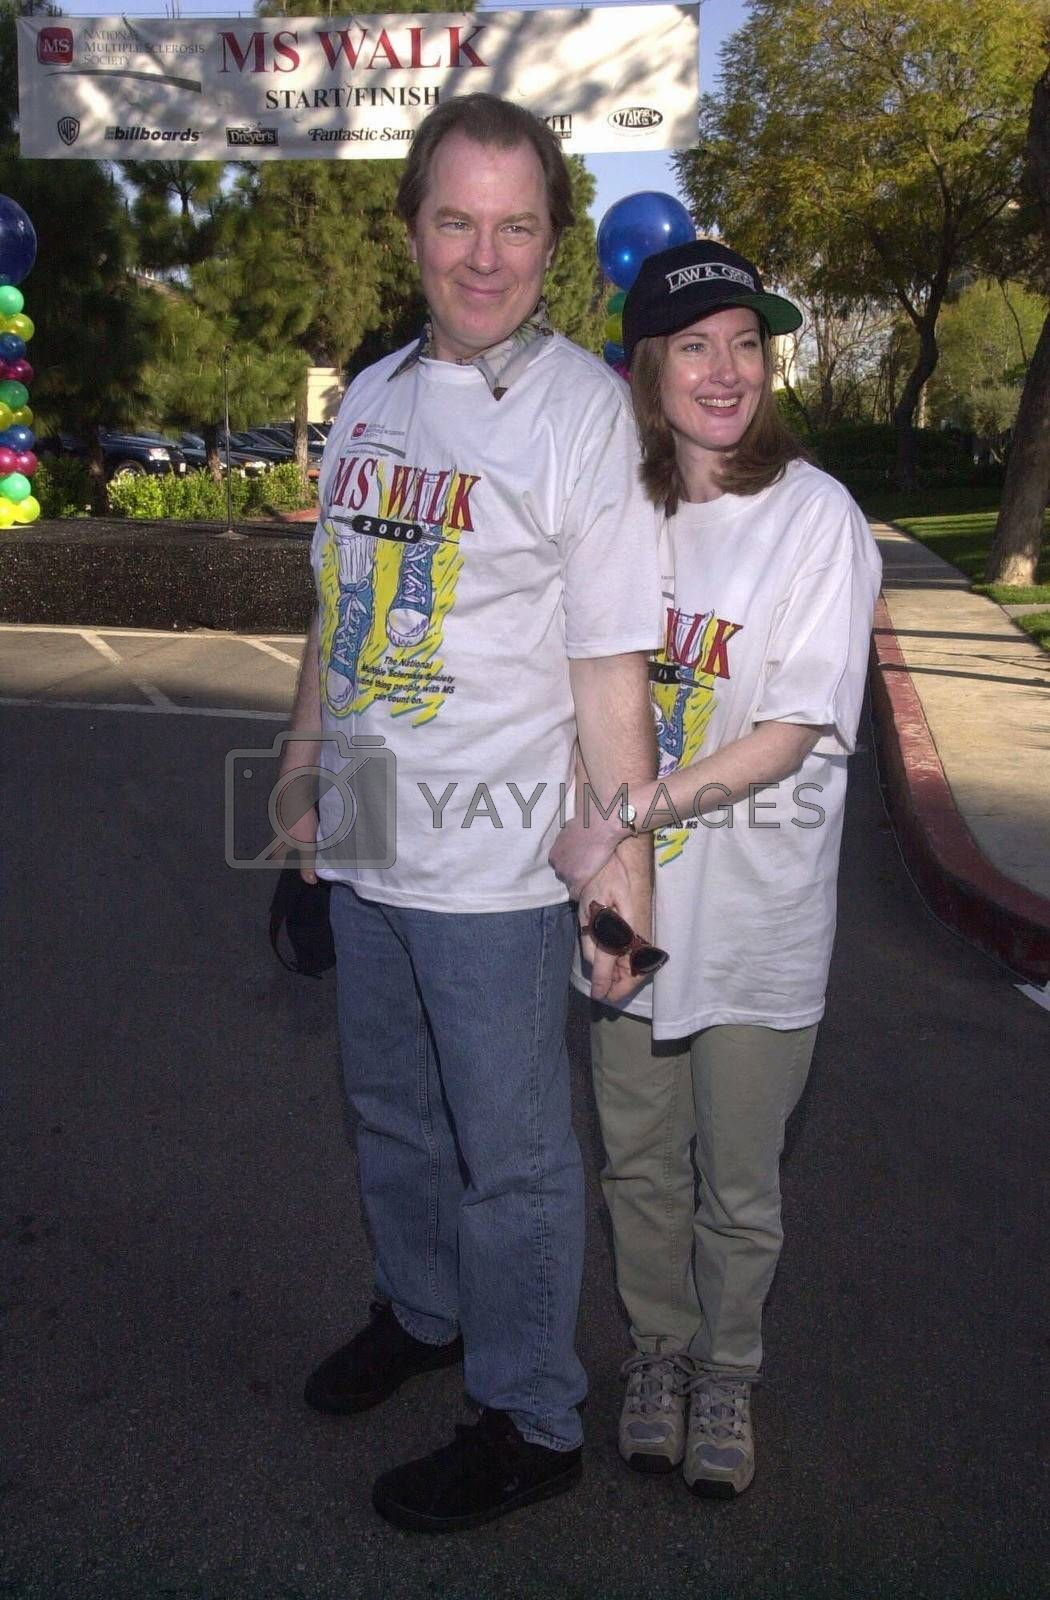 """Michael Nickean and Annette O'Toole at the MS Walk 2000, where the cast of """"Laverne and Shirley"""" reunited. Burbank, 04-09-00"""